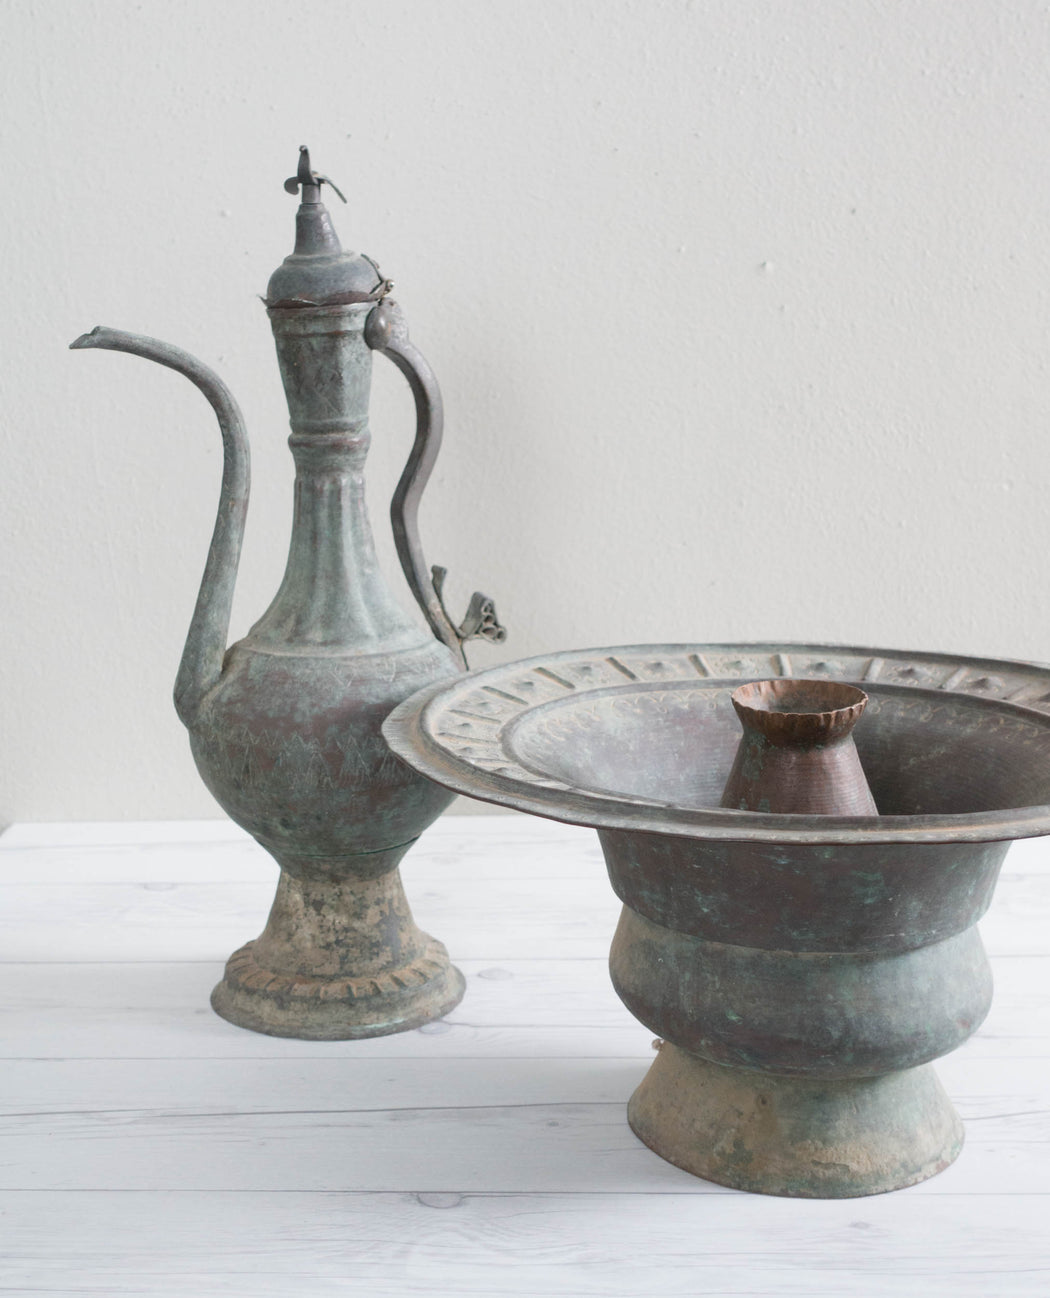 Antique Egyptian Engraved Copper Brazier Basin and Pitcher Set